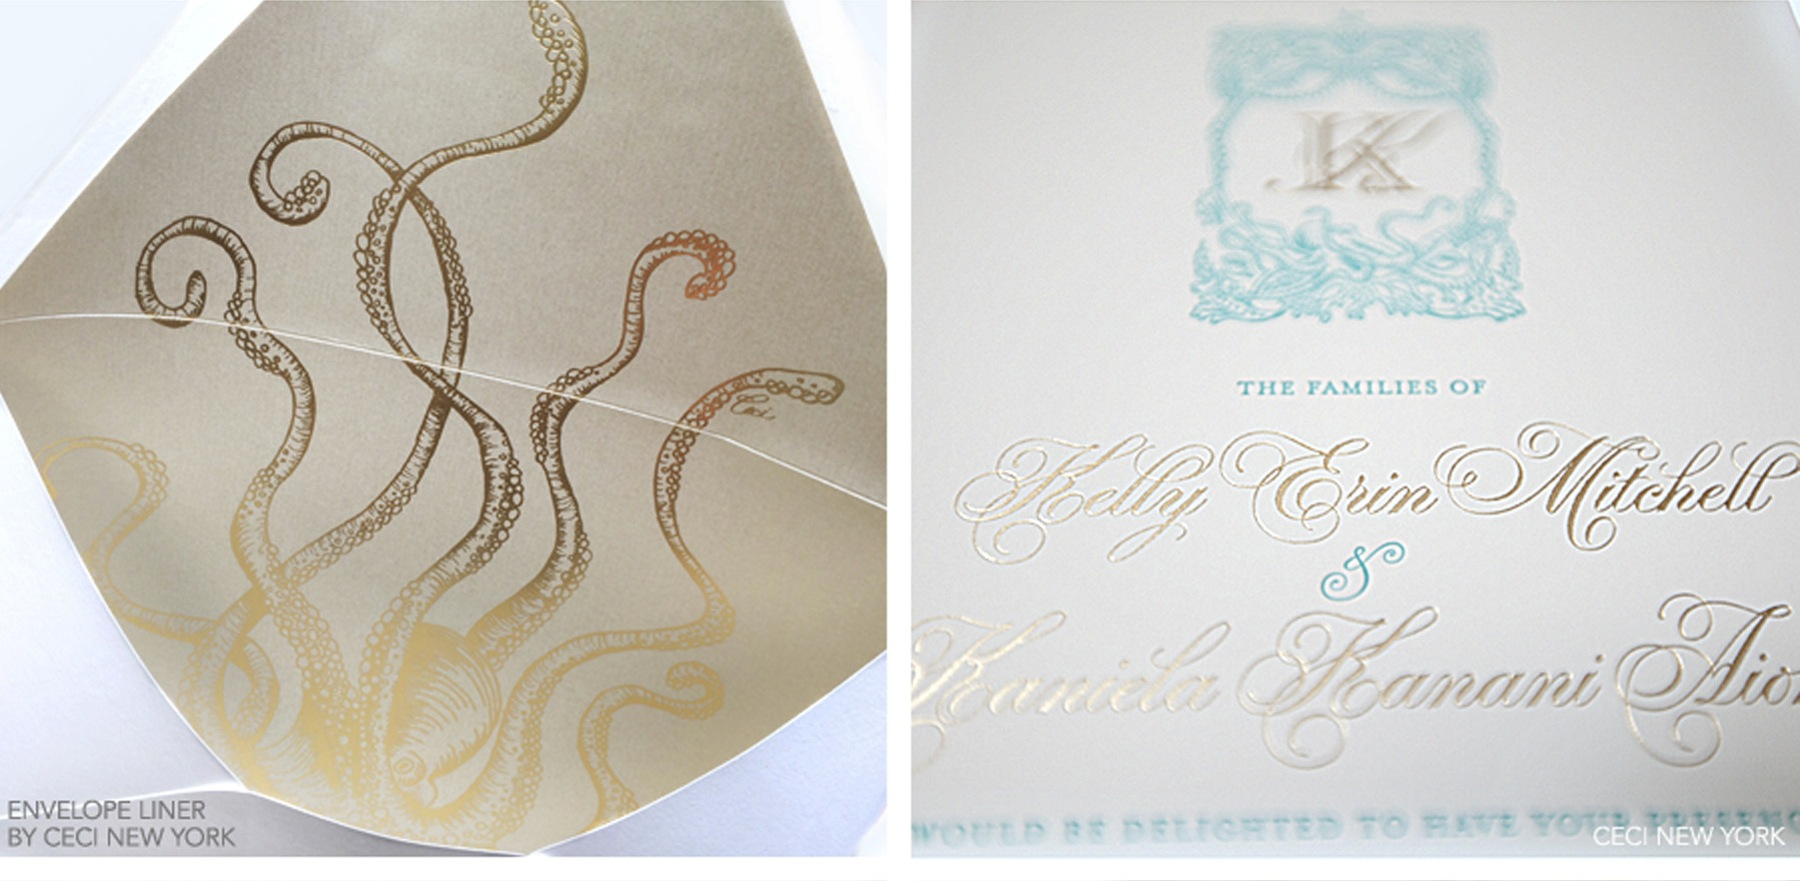 Luxury Wedding Invitations by Ceci New York - Our Muse - Tropical Hawaiian Wedding - Be inspired by Kelly & Kaniela's tropical, vintage Hawaiian wedding - Ceci New York Luxury Wedding Invitations - letterpress, printed, foil stamp, beveled edge, tinted edge, crest, octopus, invitation, luxury, wedding, hawaii, sea, shimmer